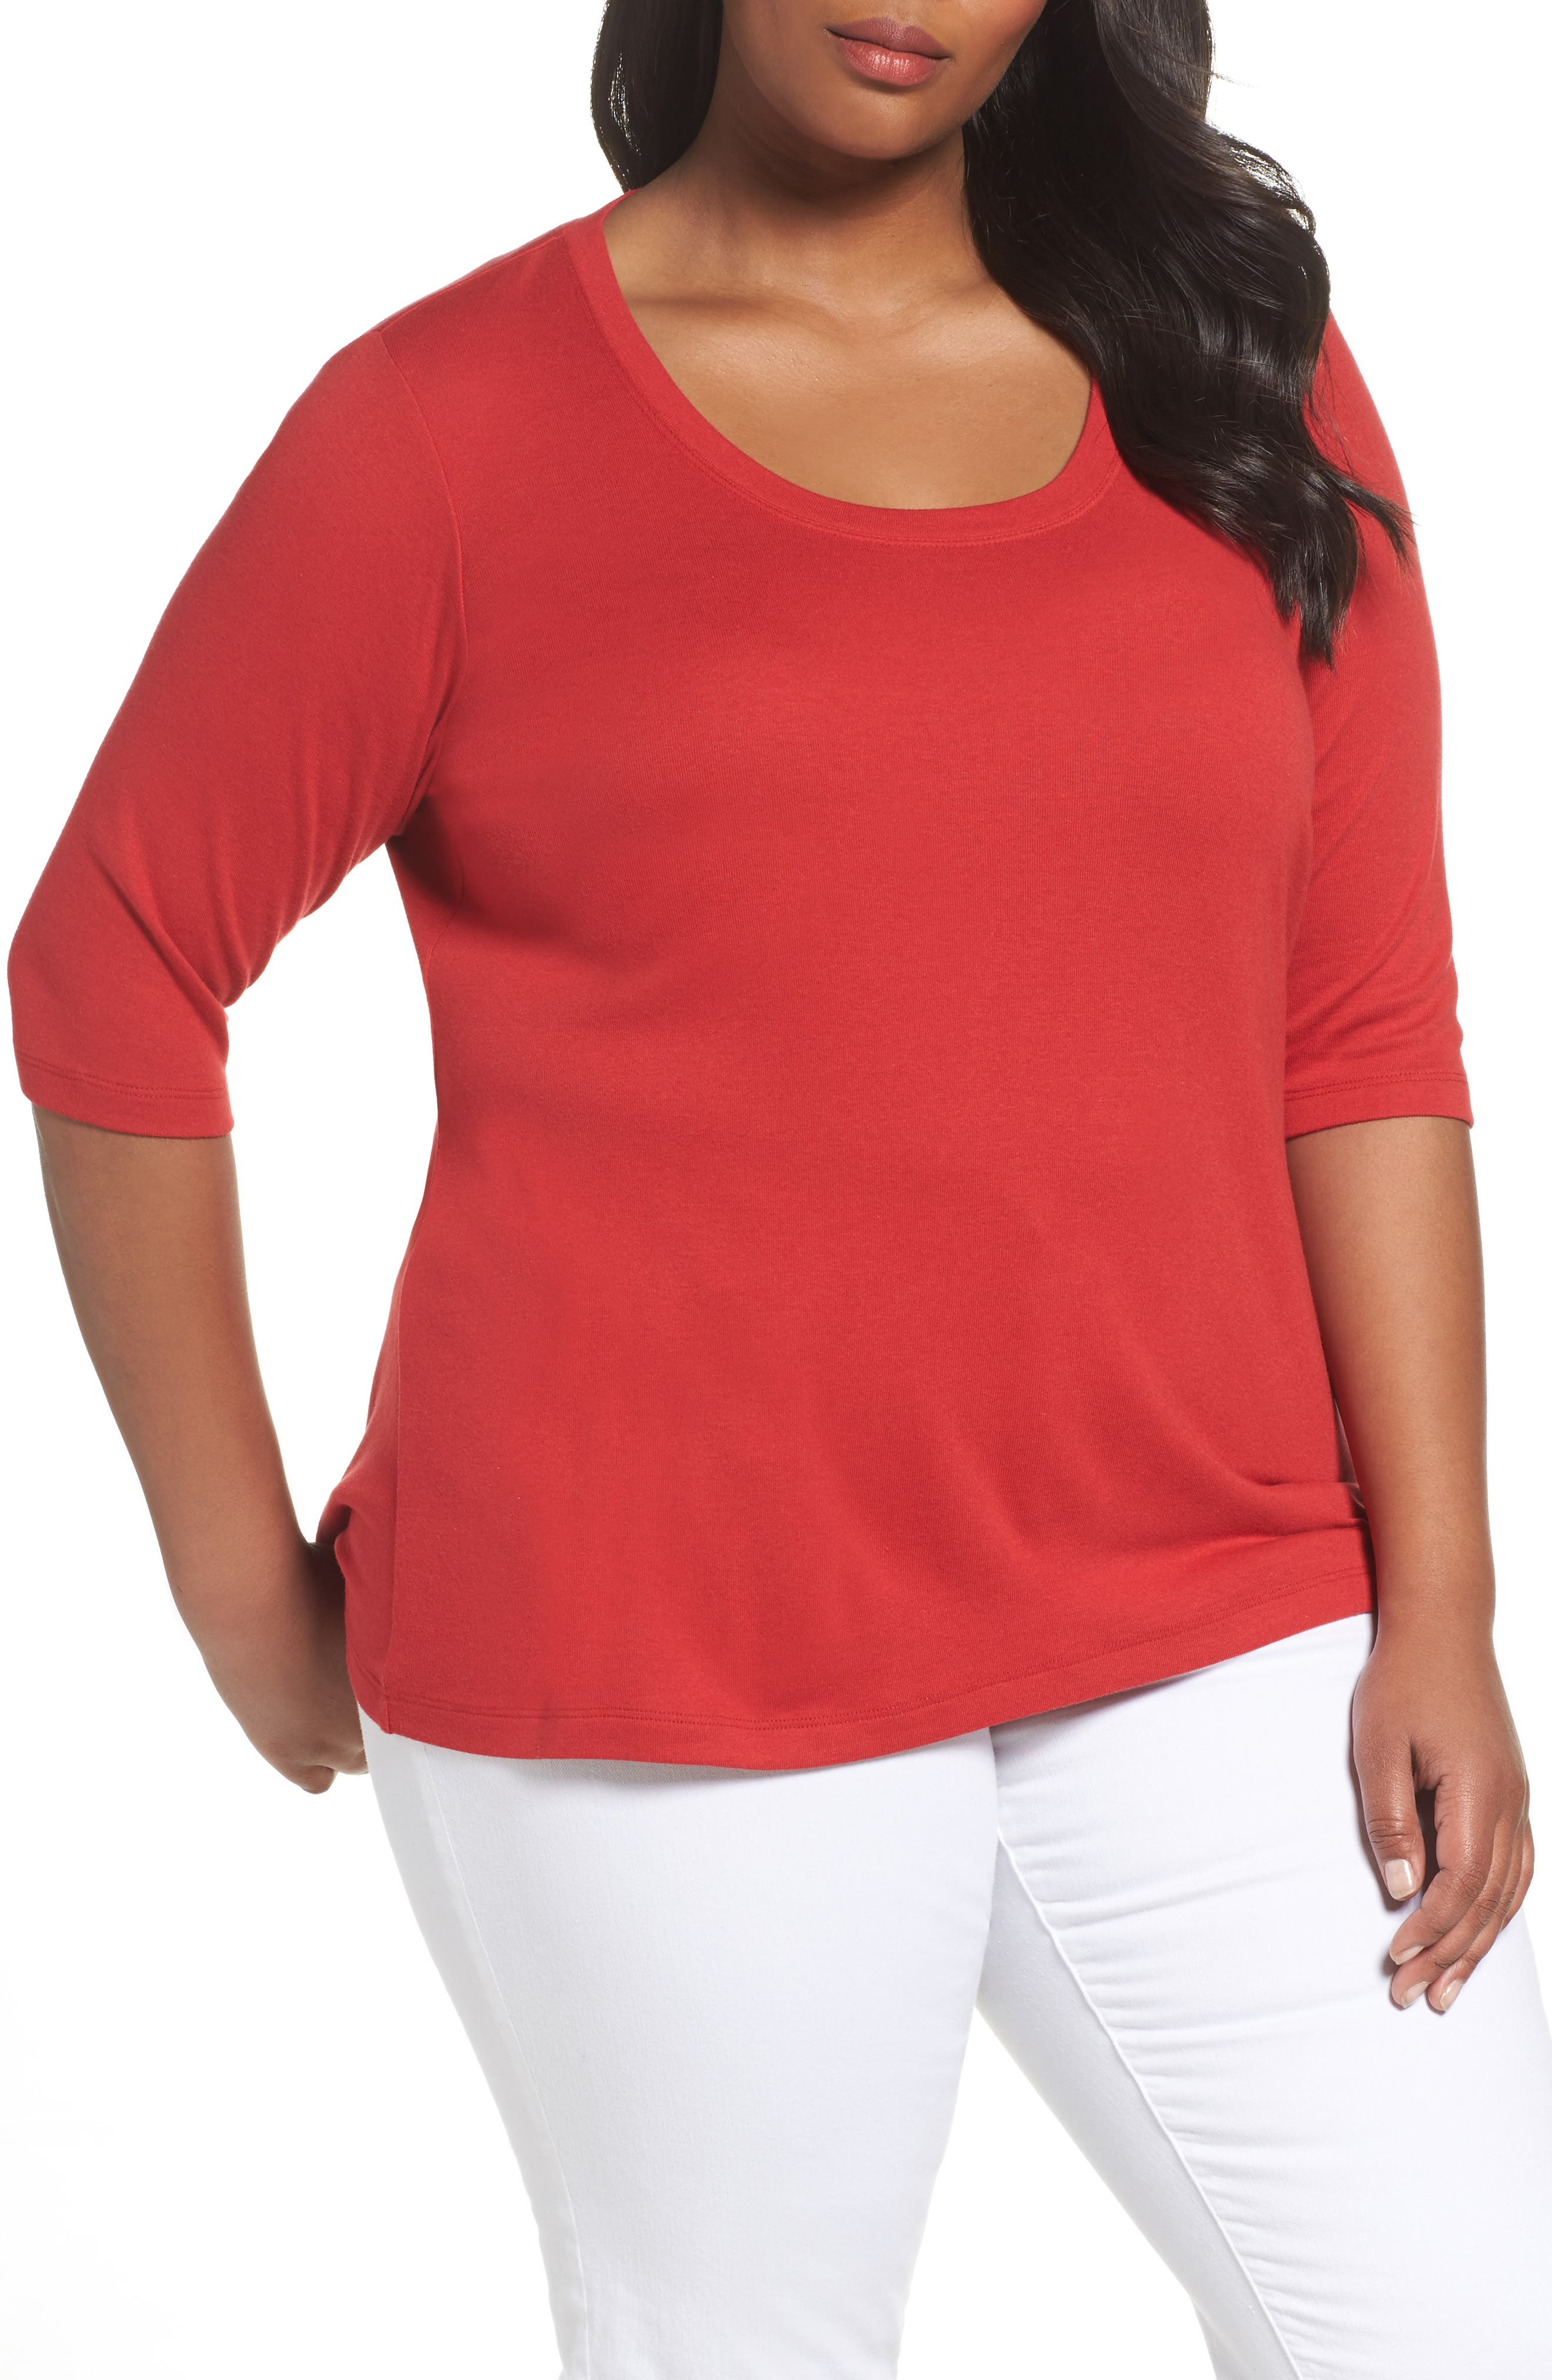 SEJOUR Elbow Sleeve Scoop Neck Tee